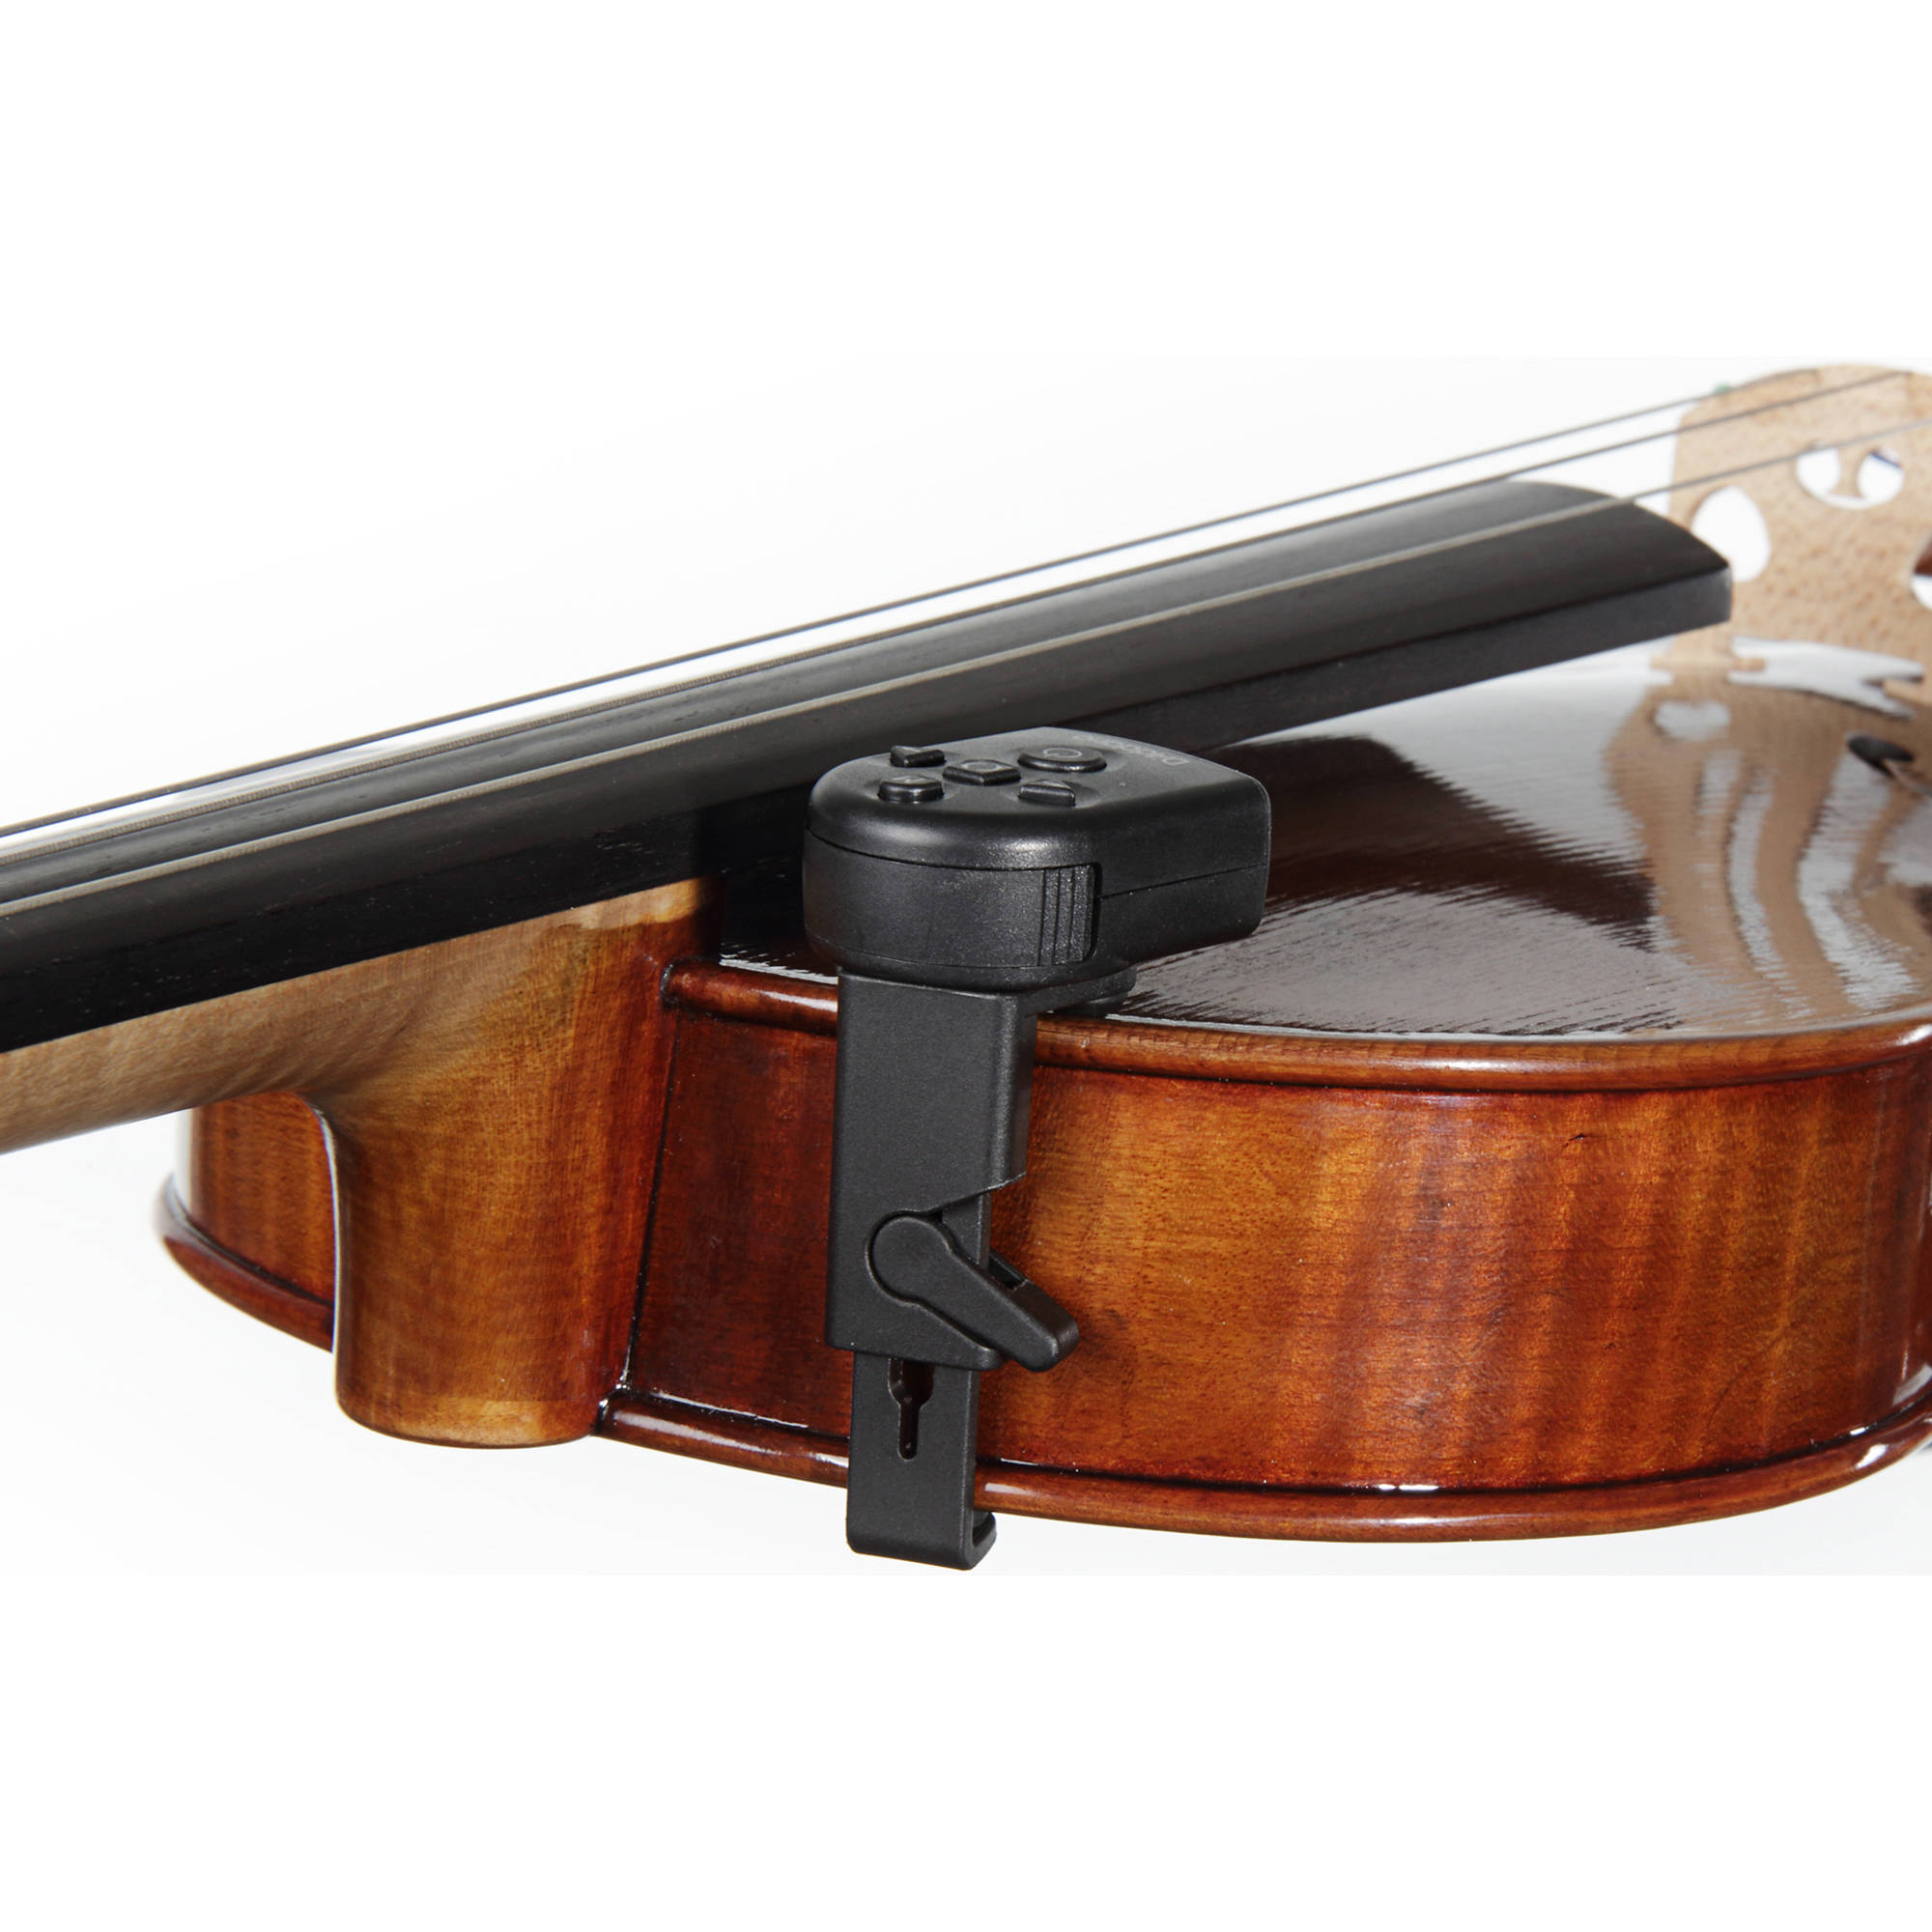 Planet Waves NS Micro Violin Tuner PW-CT-14 B&H Photo Video